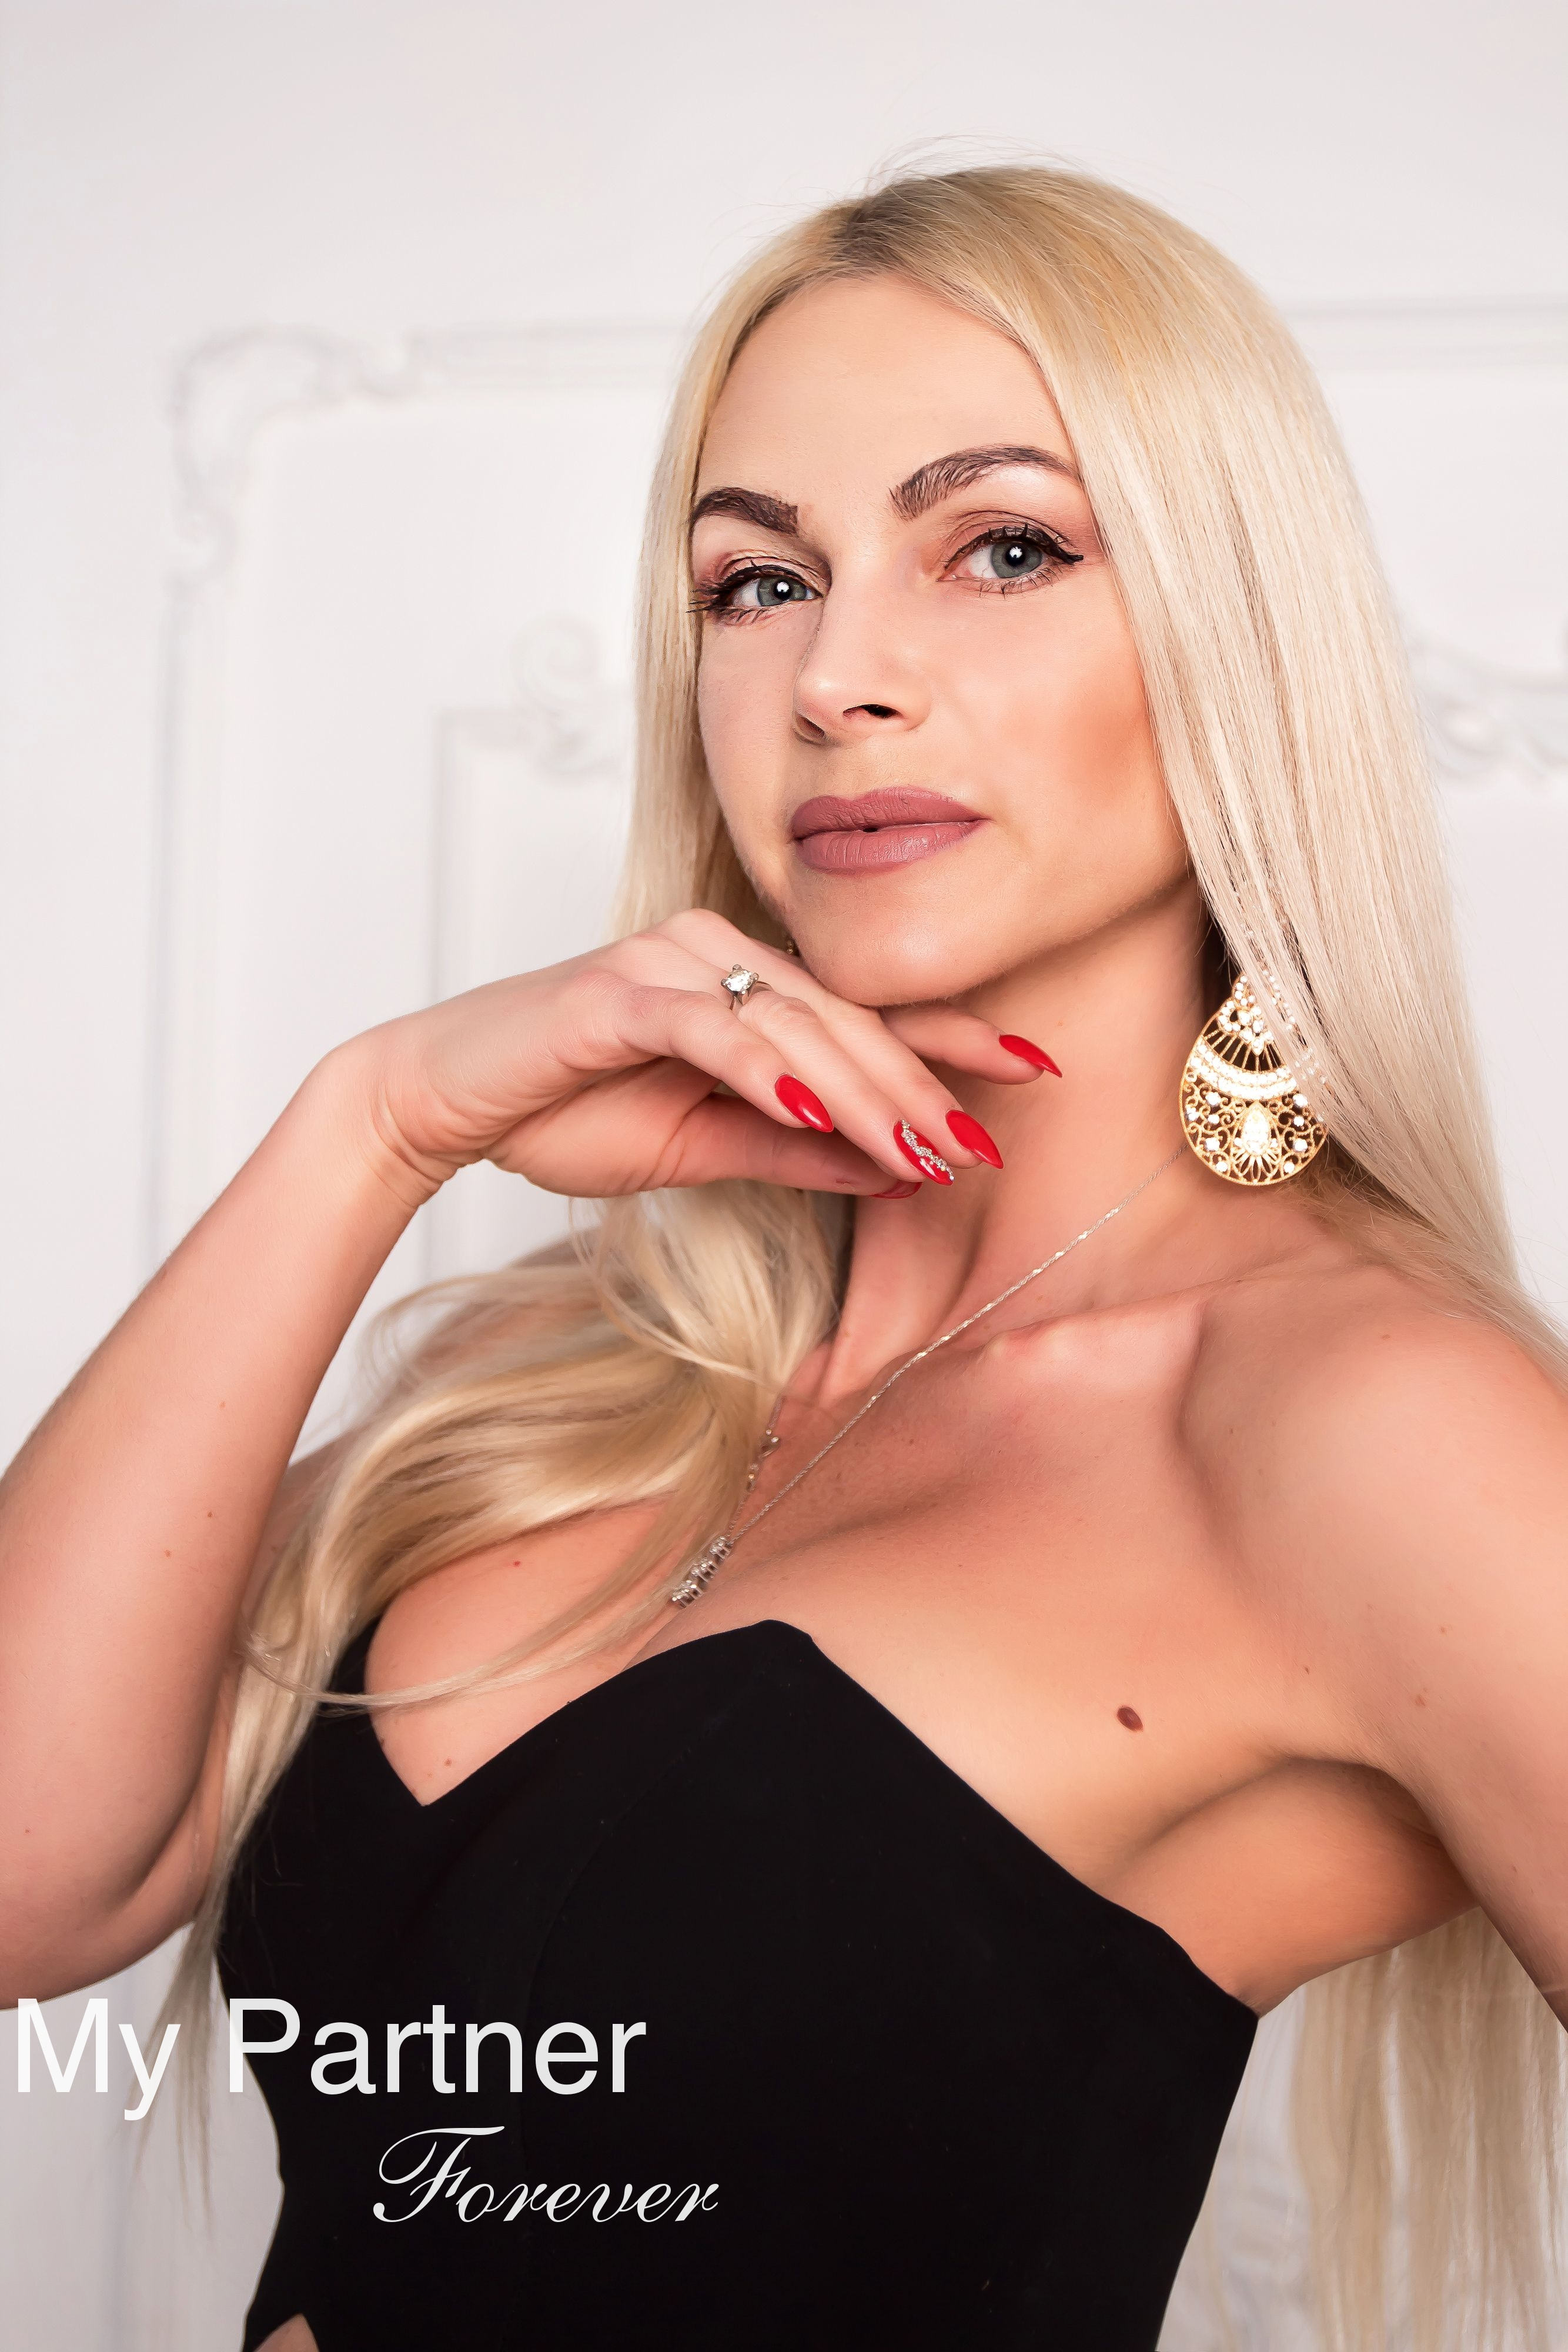 Datingsite to Meet Beautiful Belarusian Woman Nataliya from Grodno, Belarus